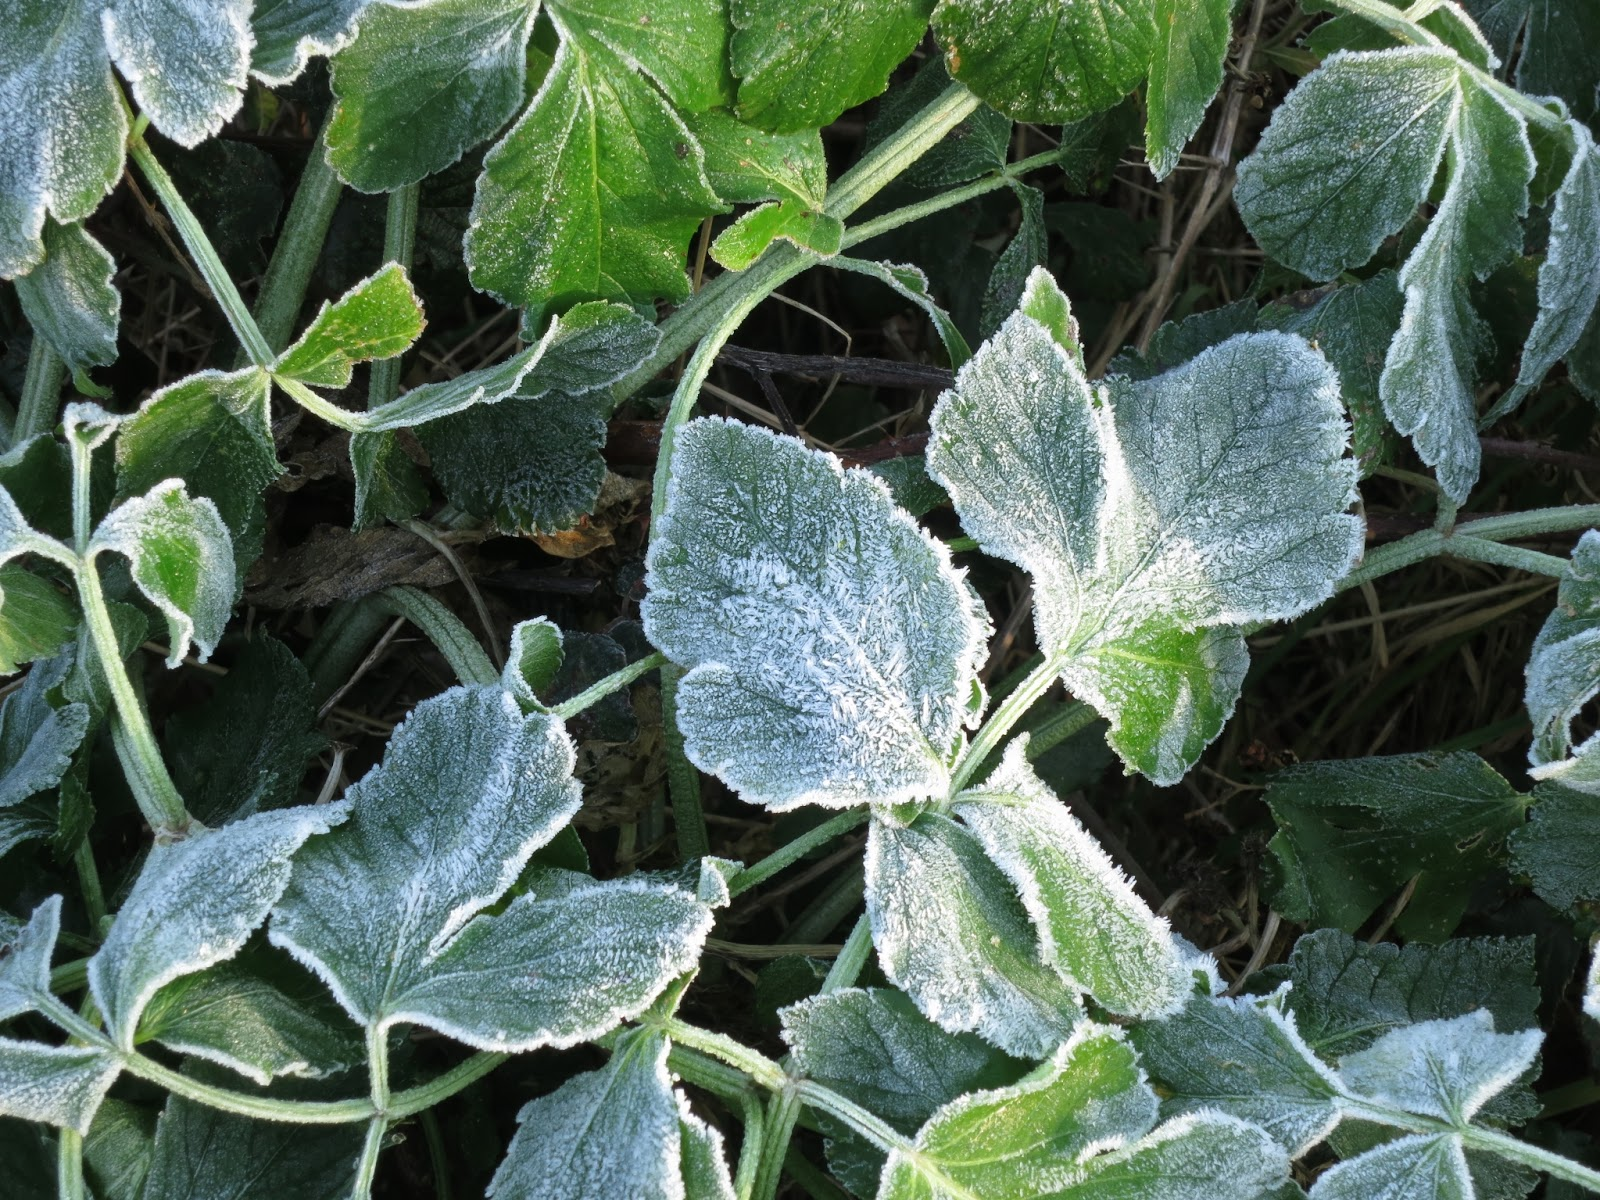 Alexander leaves close to with frost on.